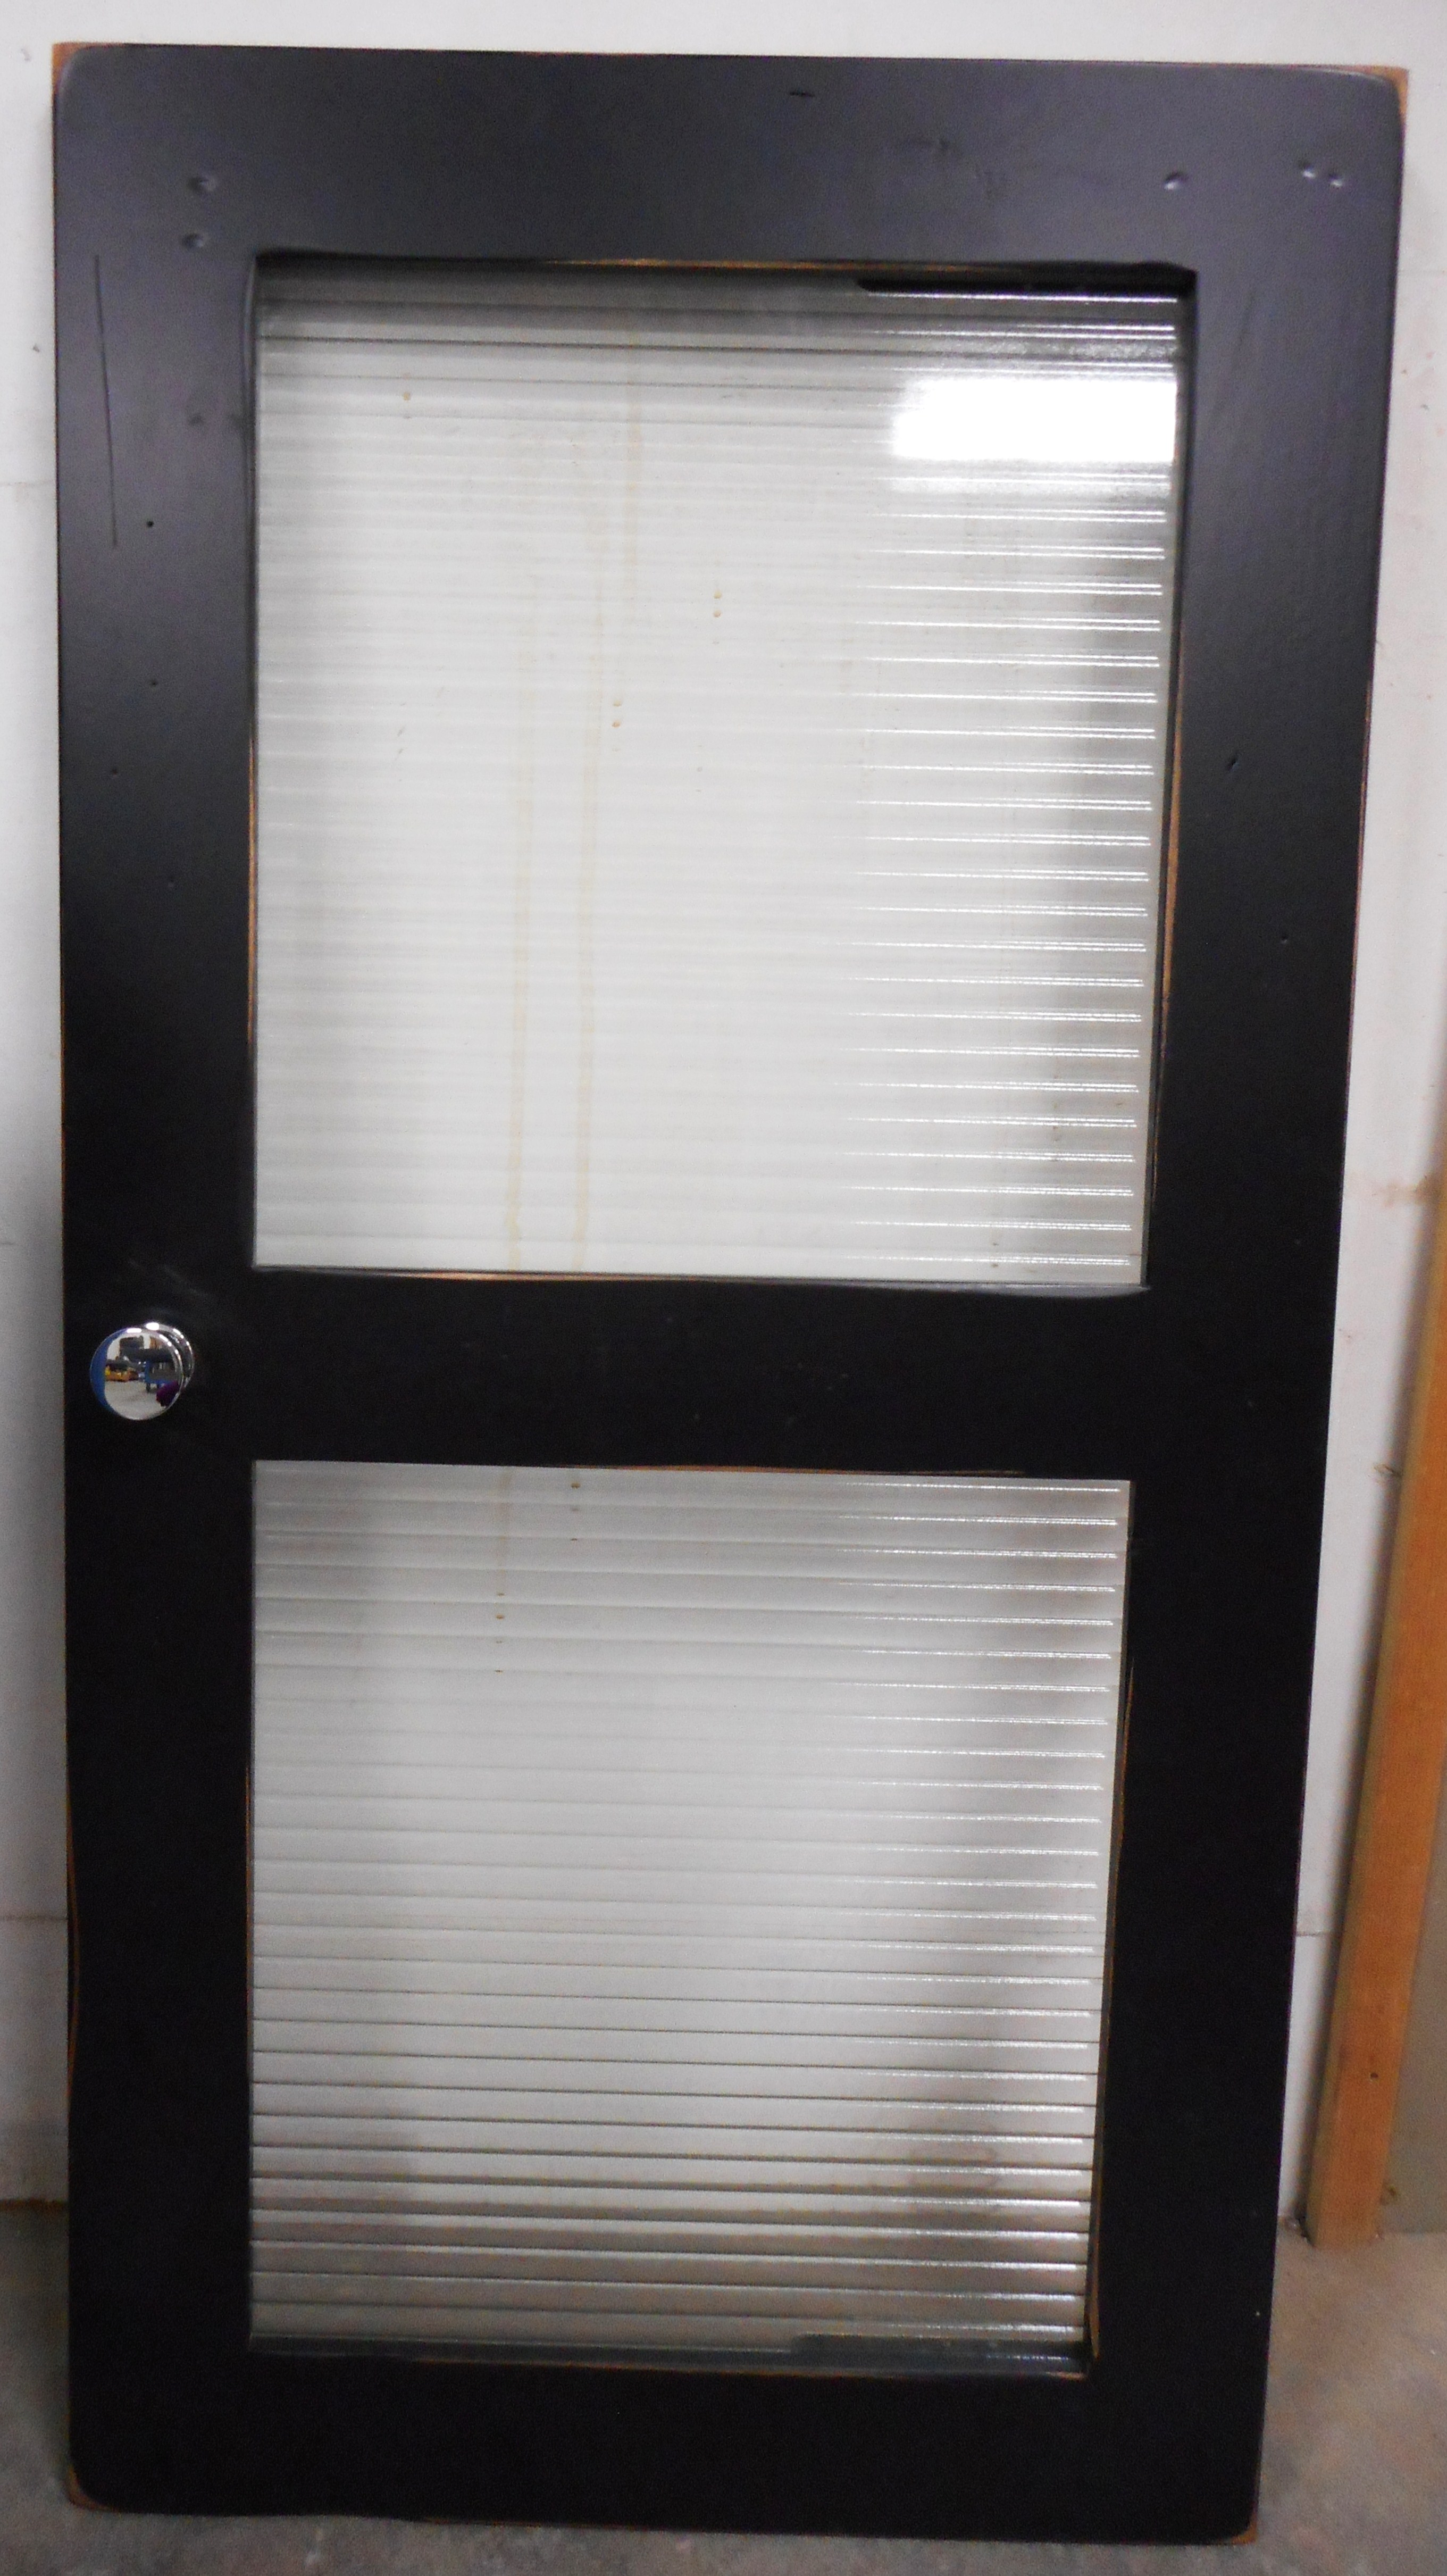 Specialty glass western glass company cabinet w 12 narrow reed pattern running horizontal eventelaan Image collections